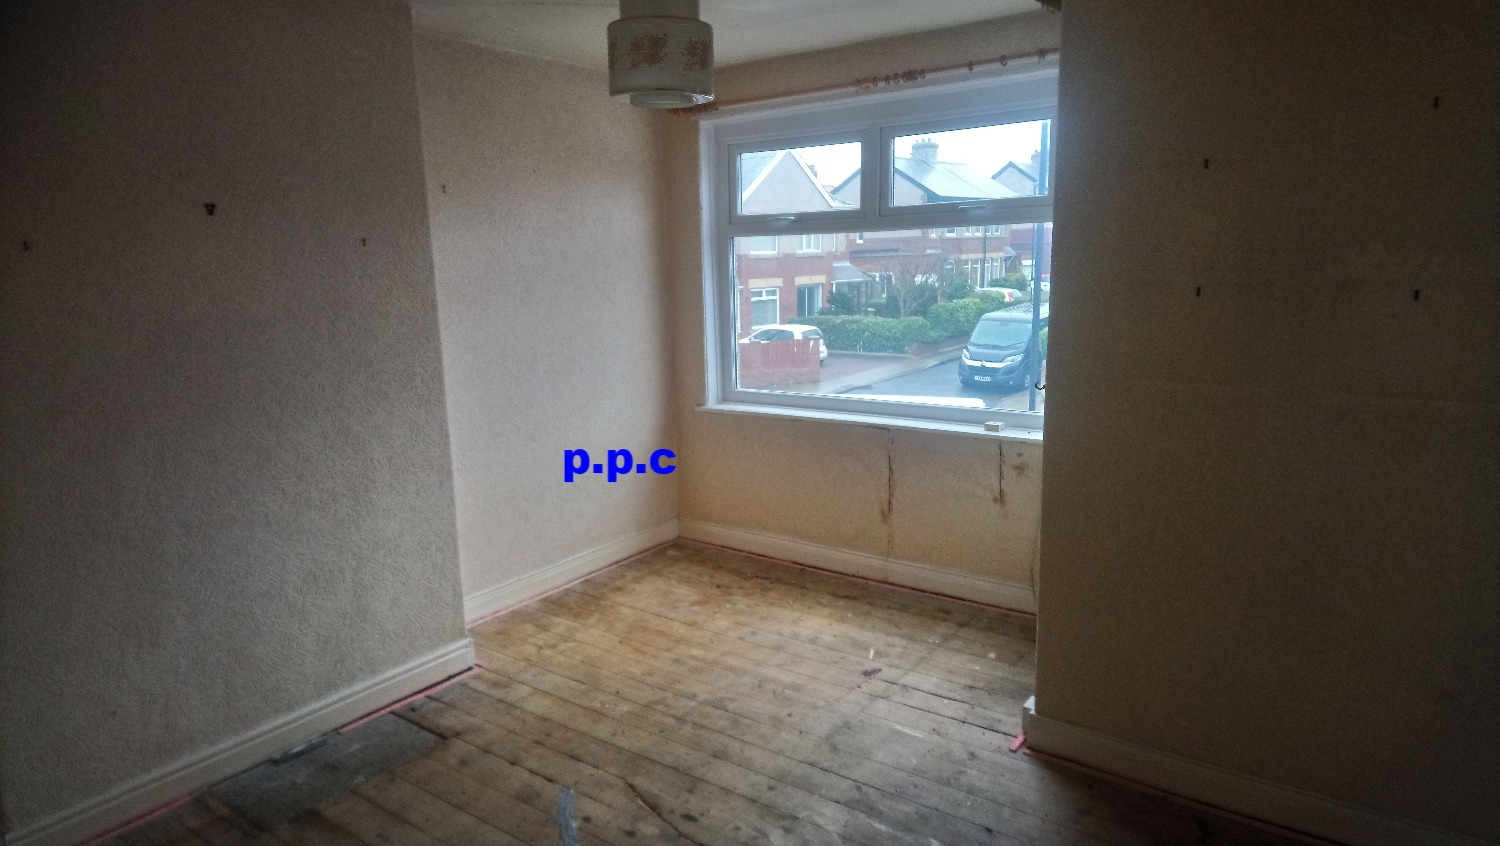 House clearance in fulwell pic 20